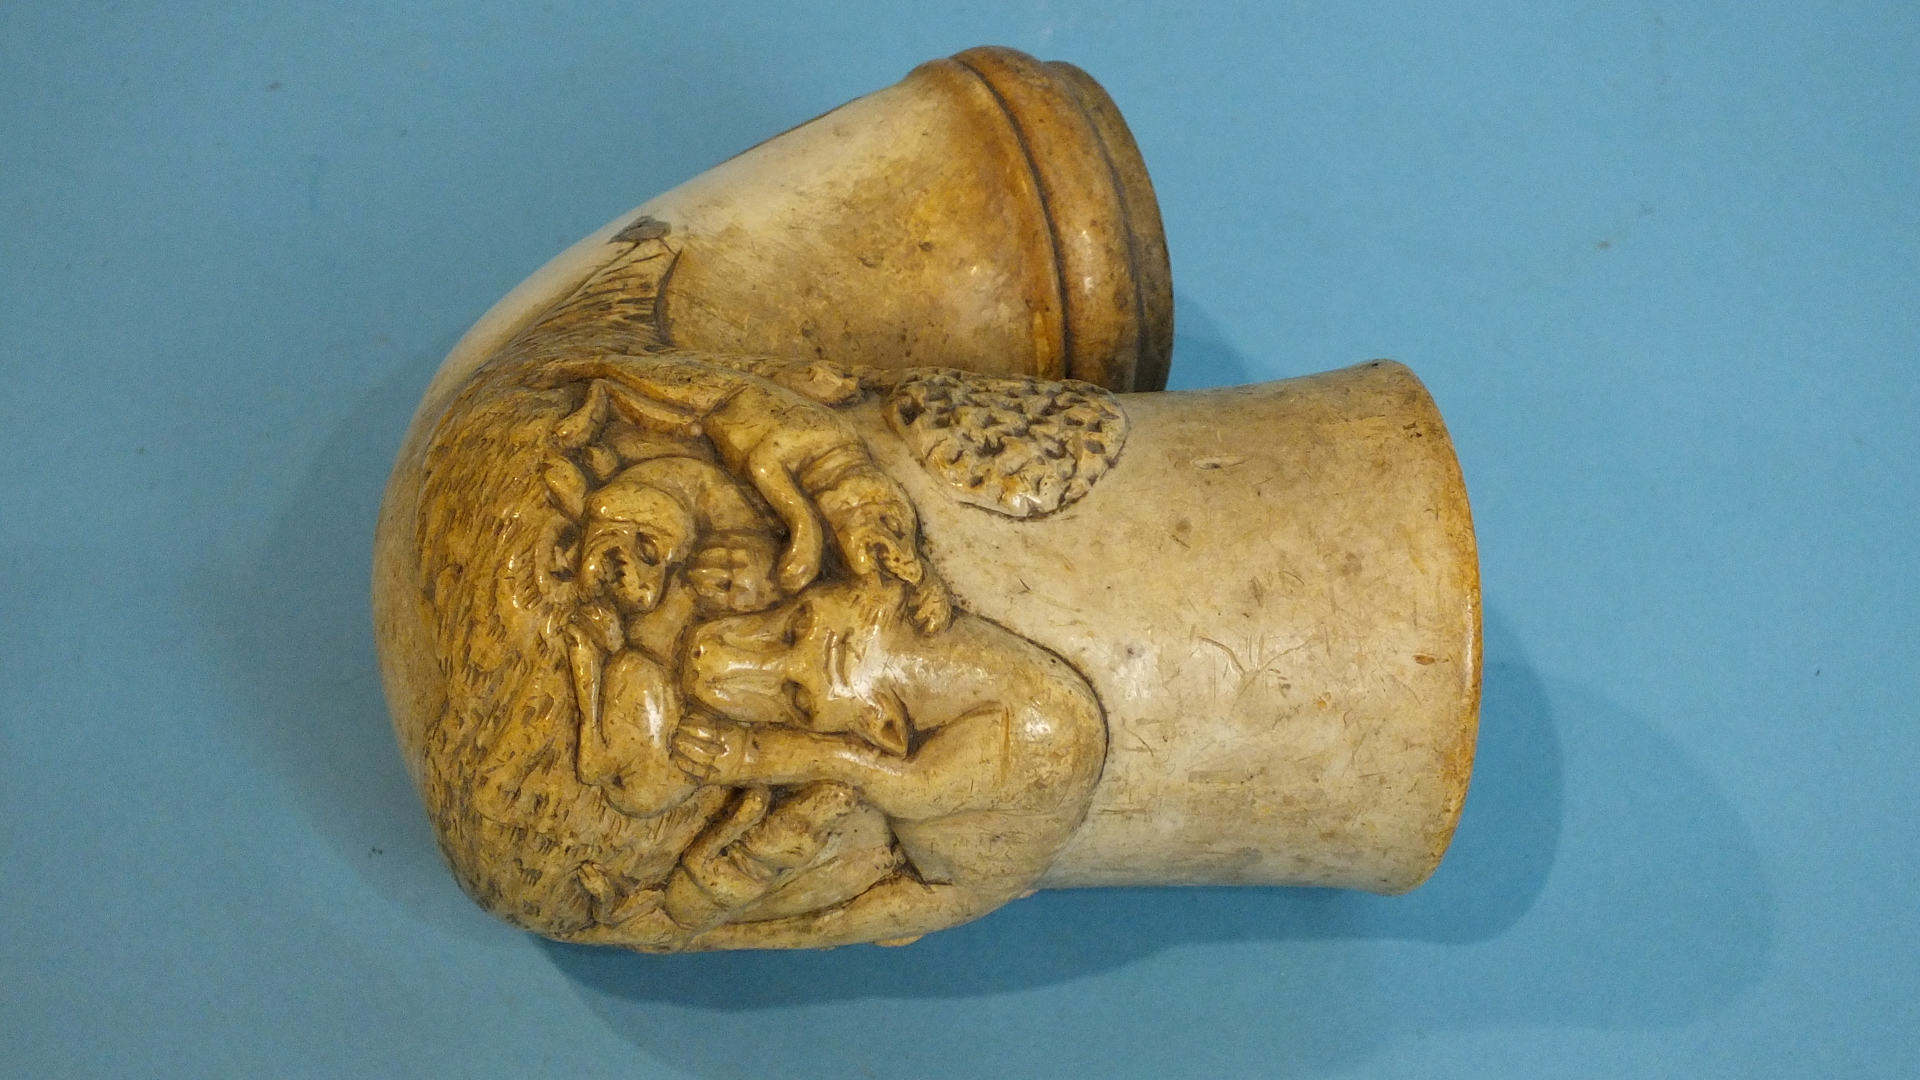 Lot 254 - A 19th century continental meerschaum pipe bowl of large proportions, carved in relief with a pack